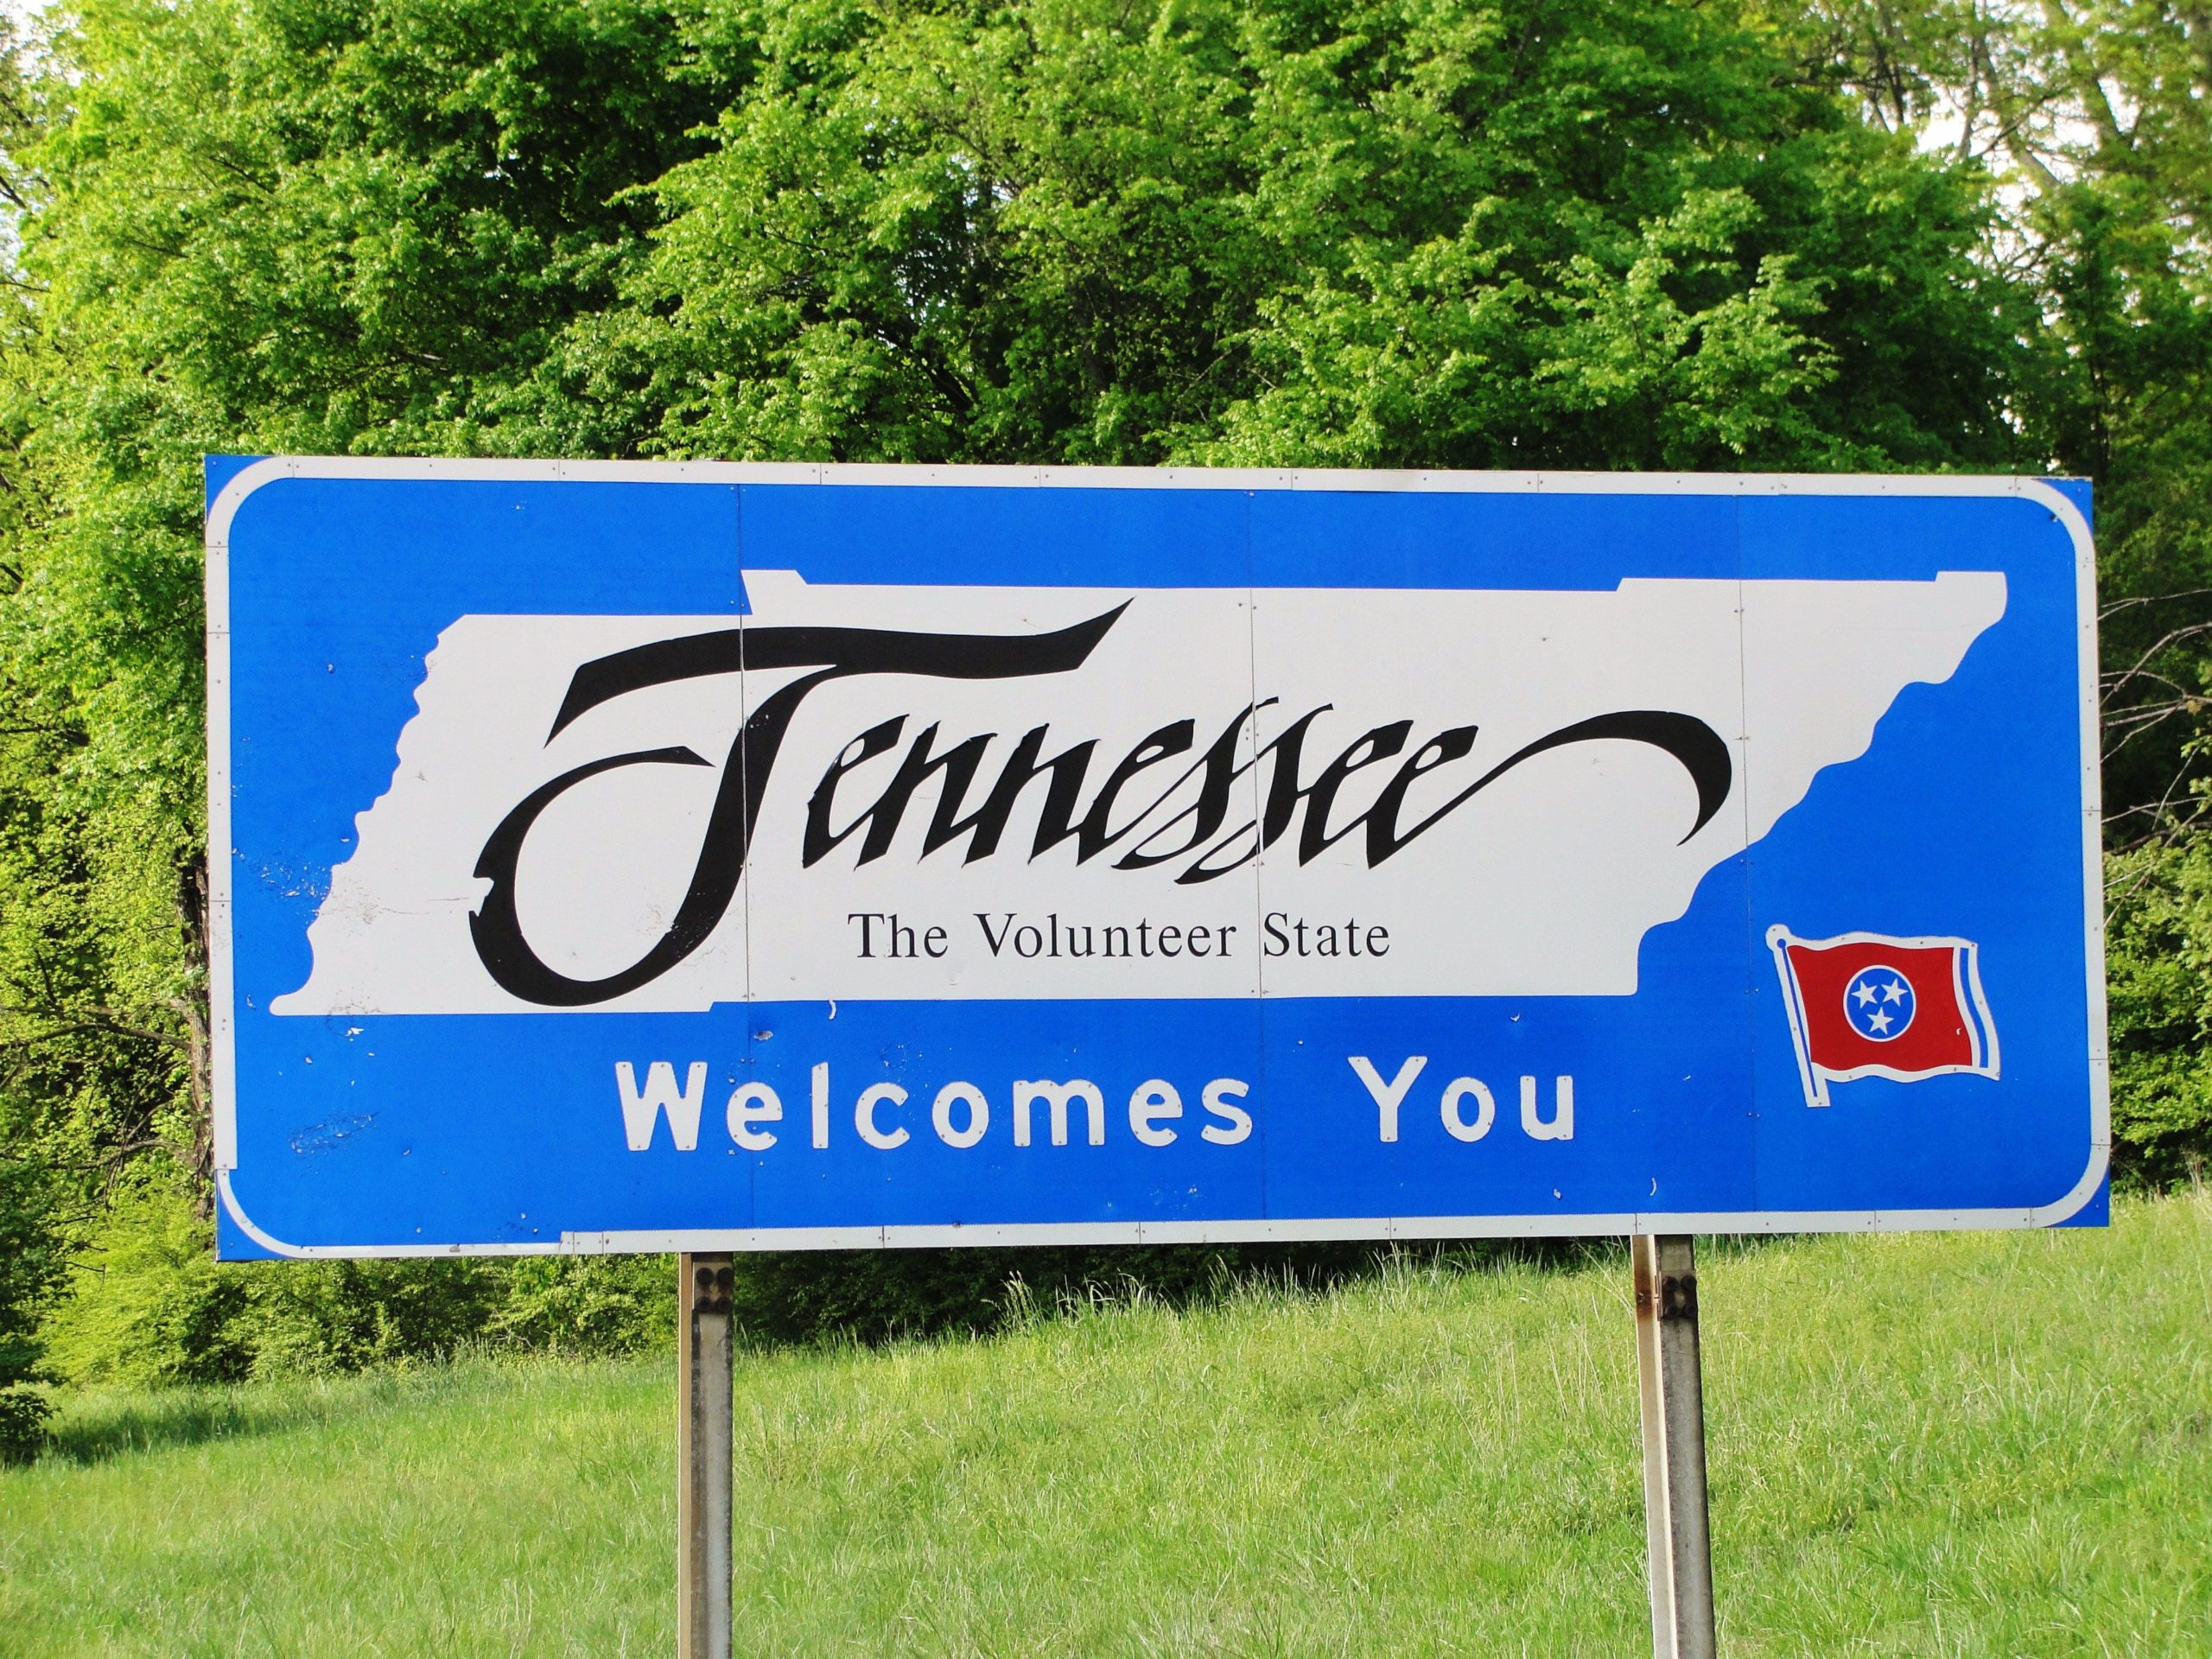 How To Sell A Car In Tennessee  –  What Paperwork Is Needed?